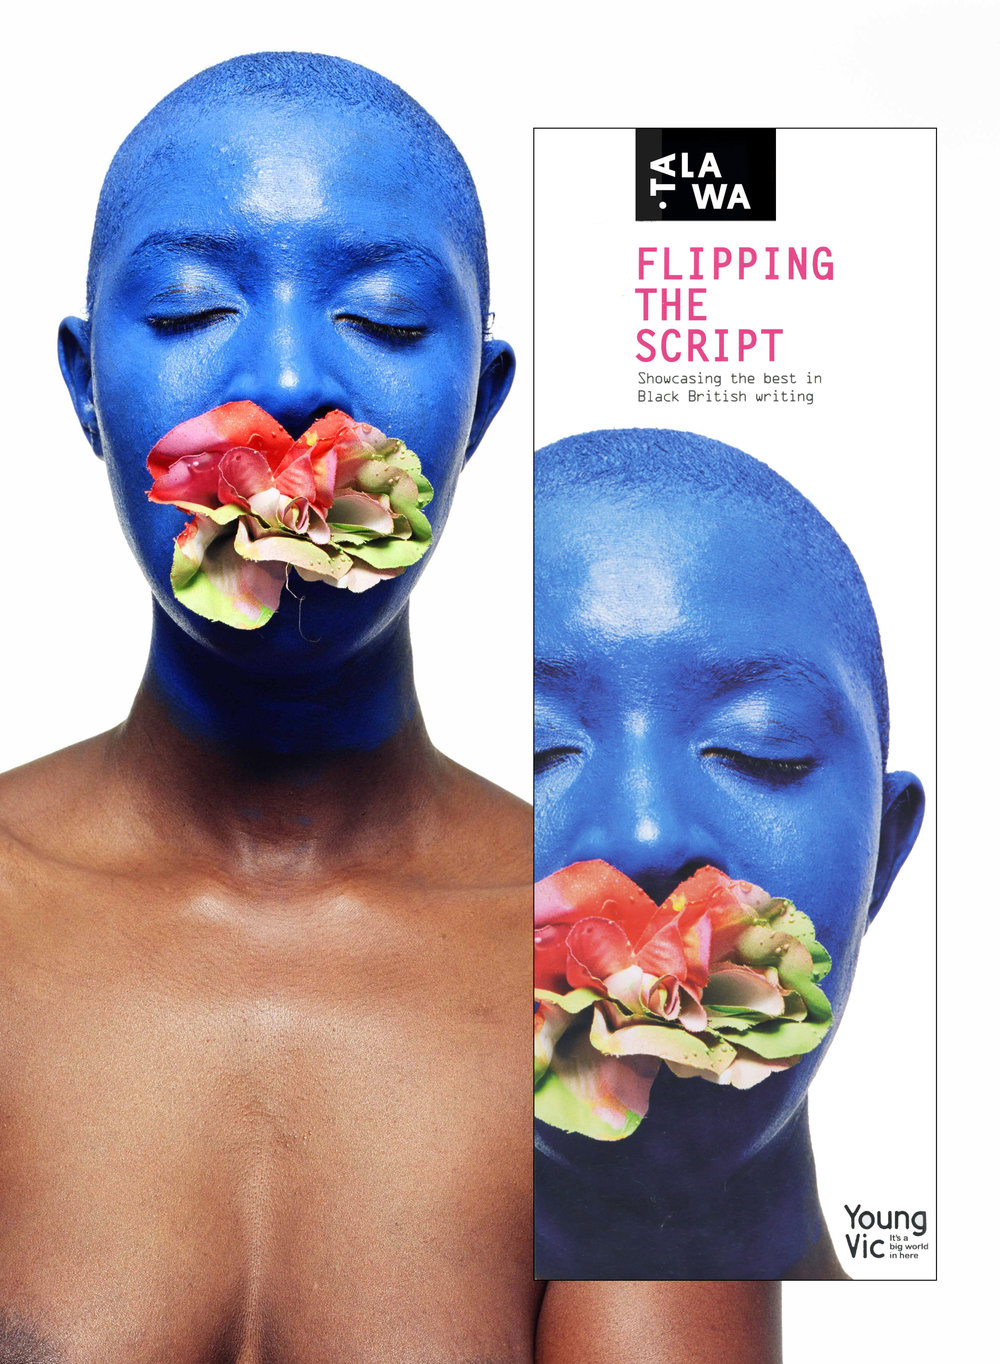 Design, Print and Image Creation for Flipping The Script Showcase